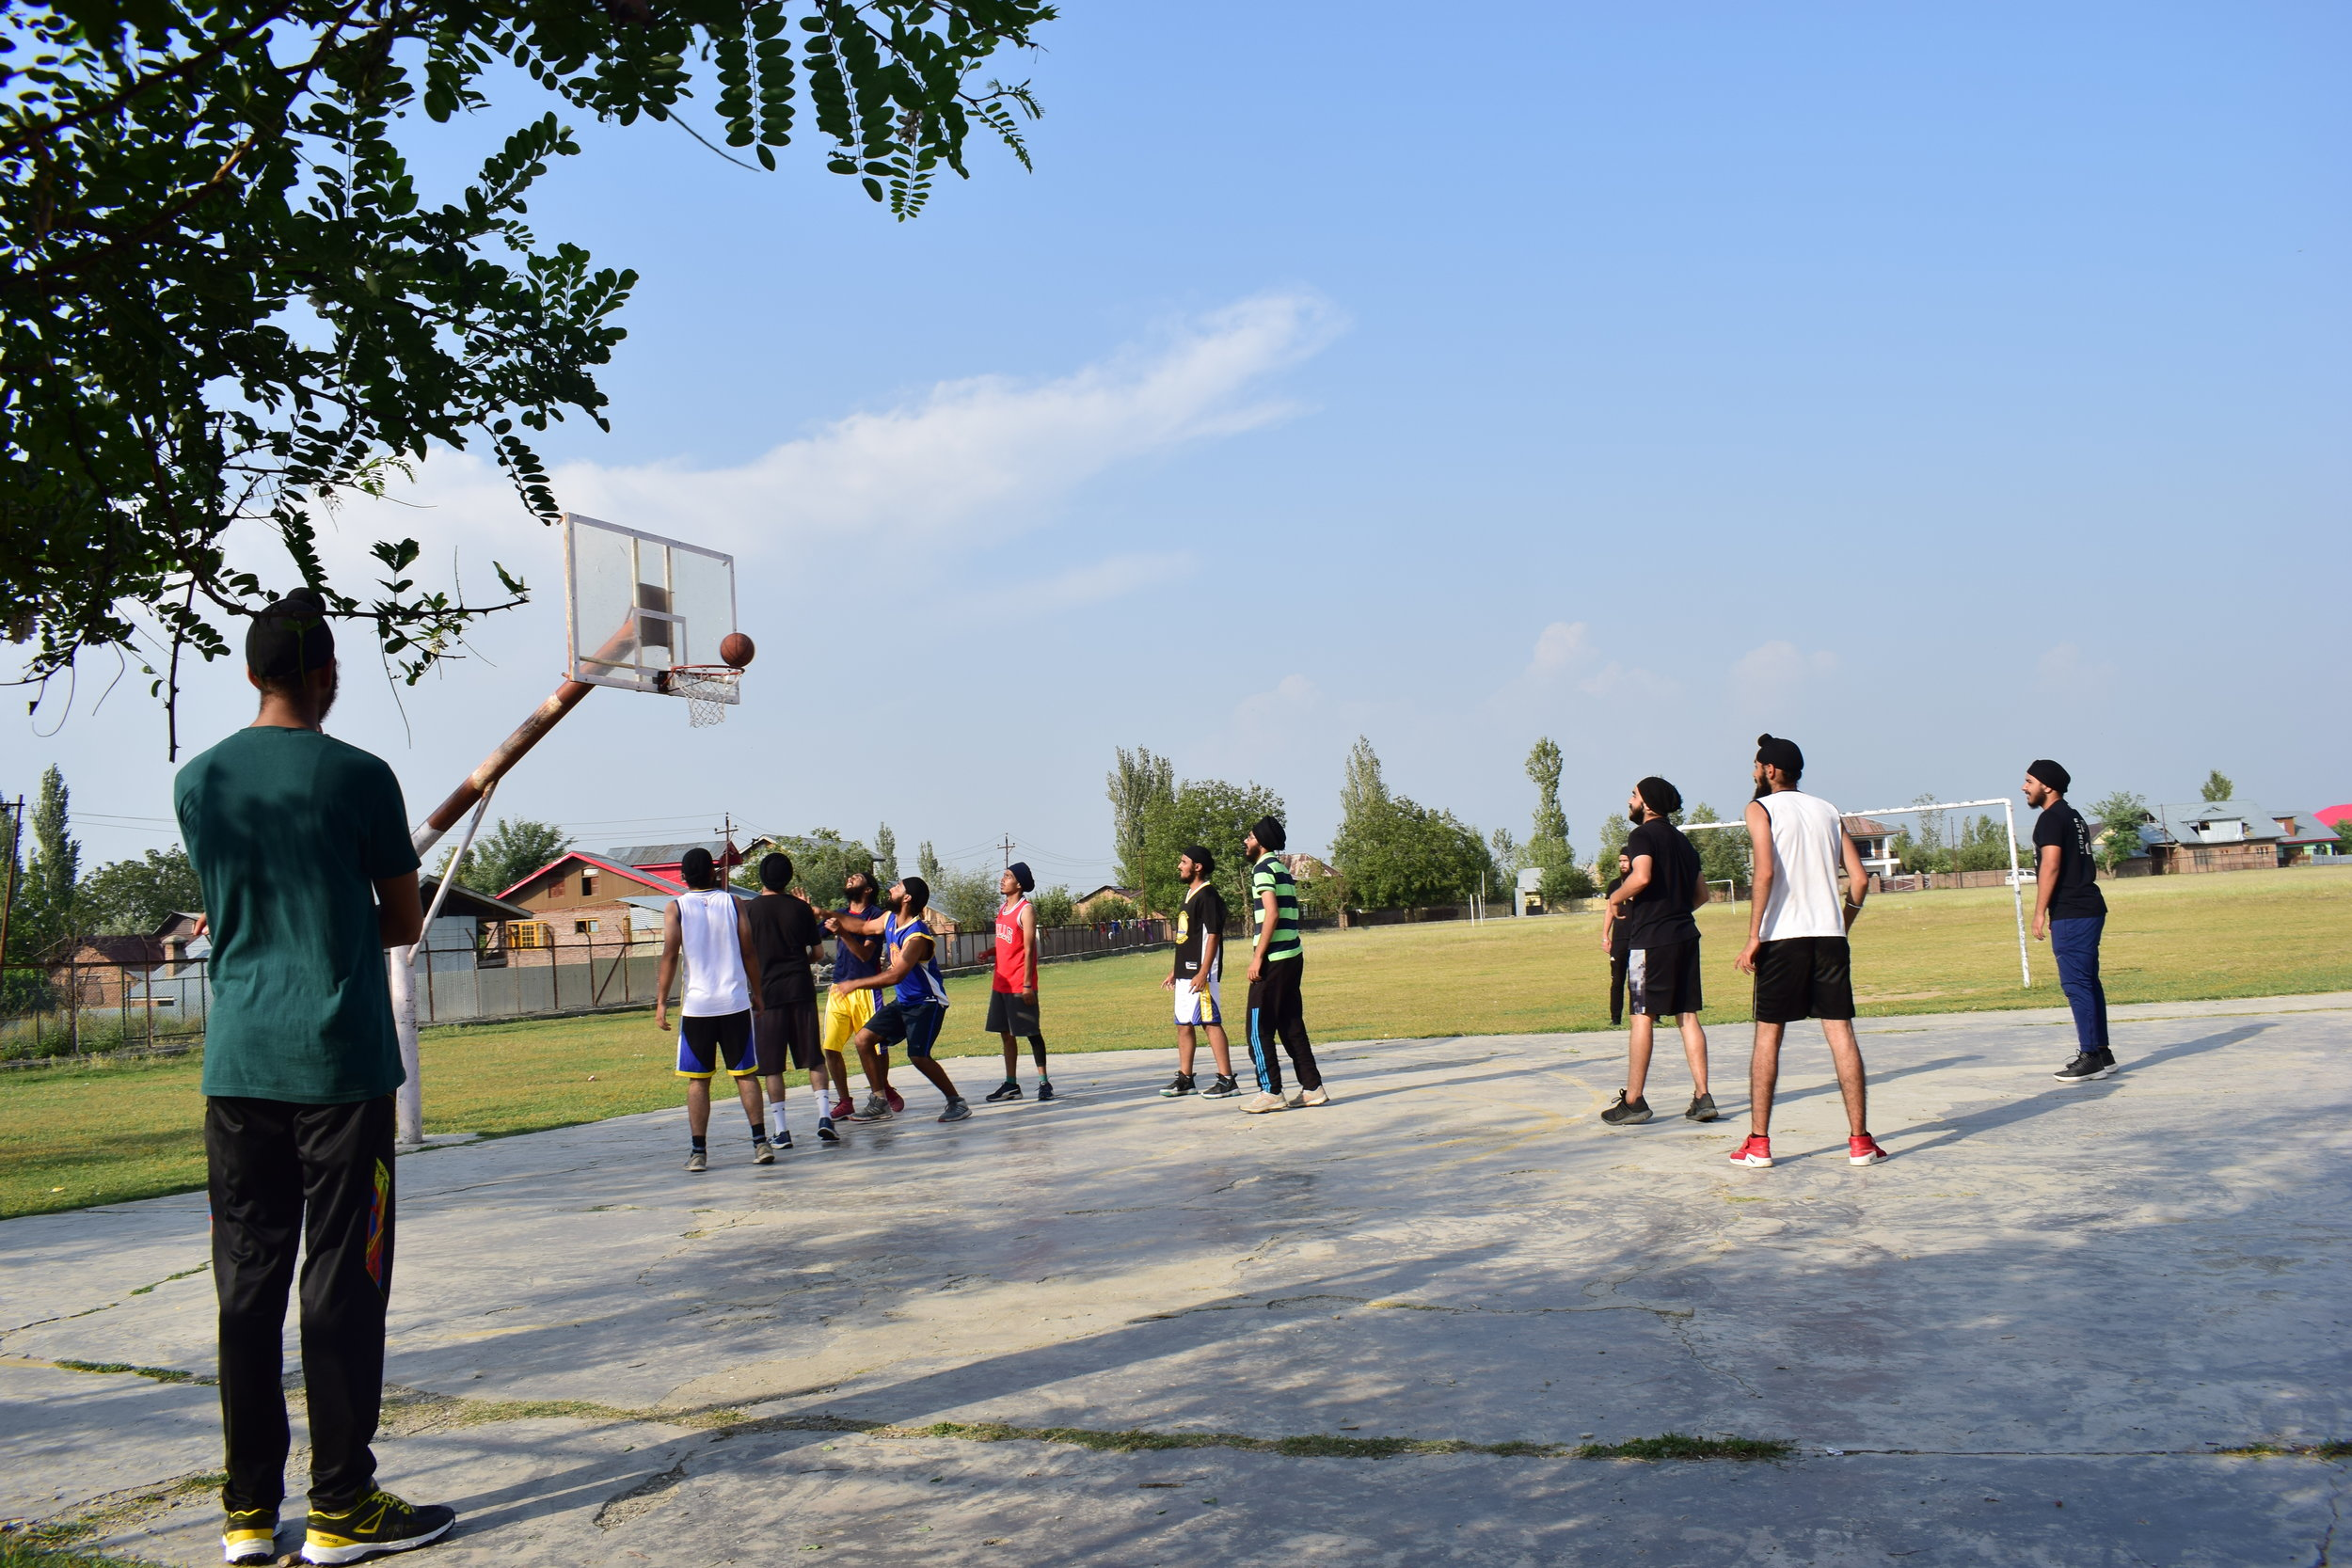 Sikh students play basketball at Kashmir University in Srinagar, the state capital. Sikhs are advocating for a Punjabi department at Kashmir University, a special government job package for Kashmiri Sikhs and democratic representation they feel shut out of. Photo by Karanjeet Singh.